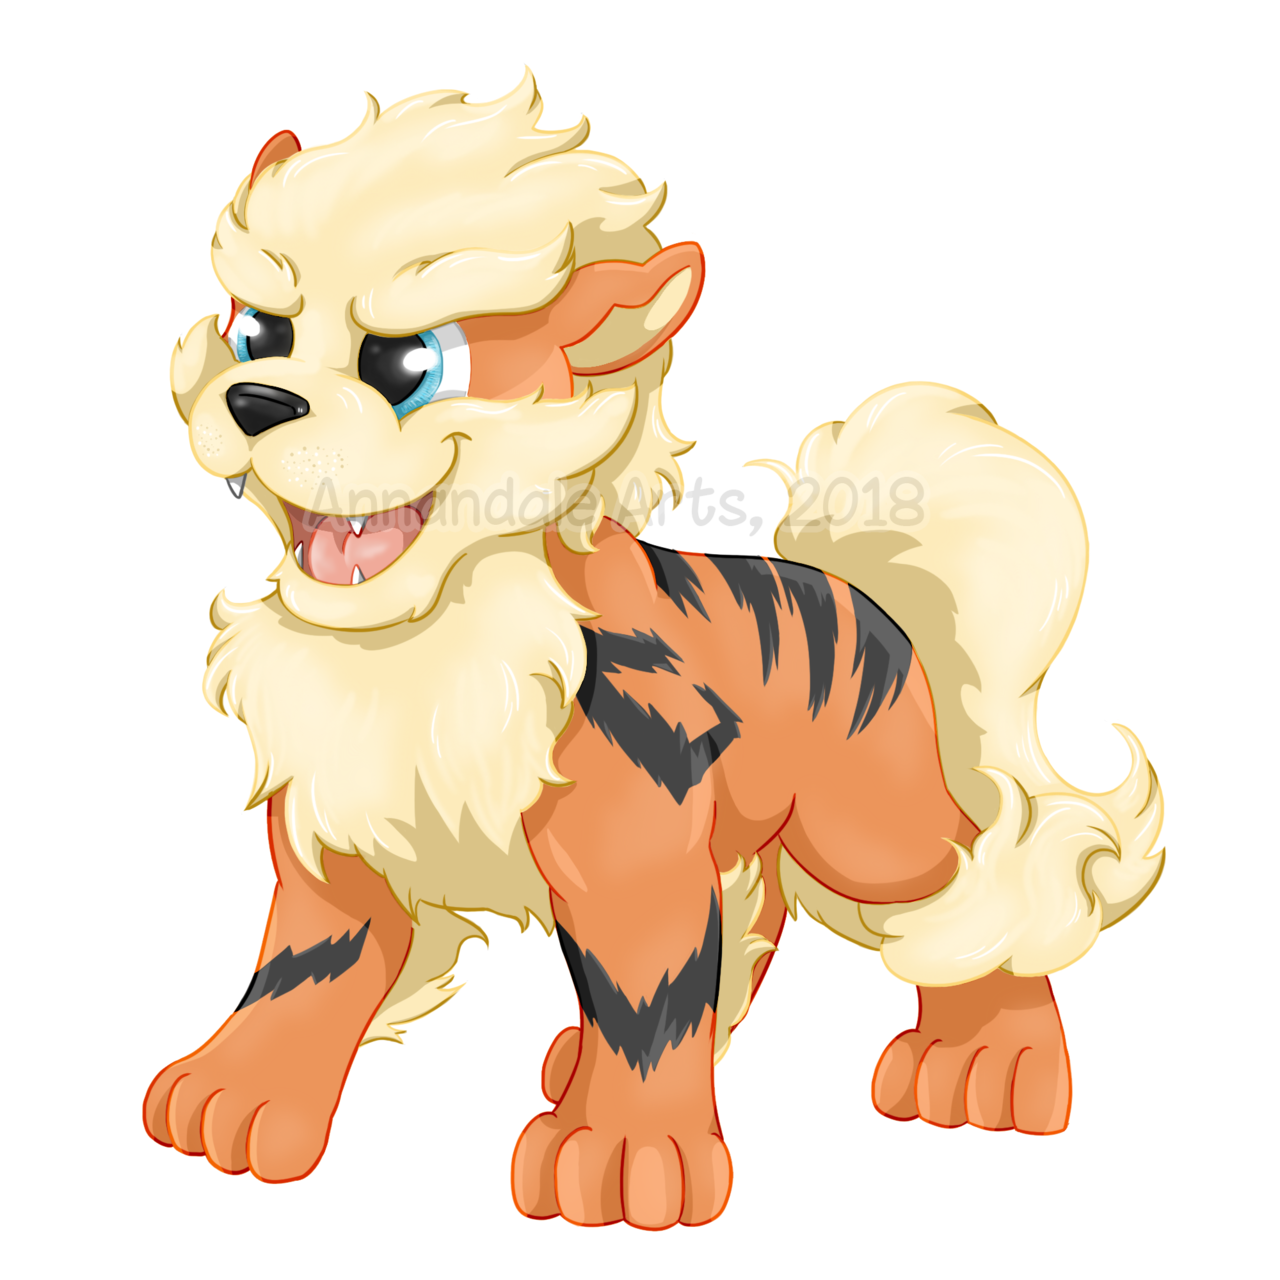 Arcanine transparent drawing pokemon. Annandale arts see the